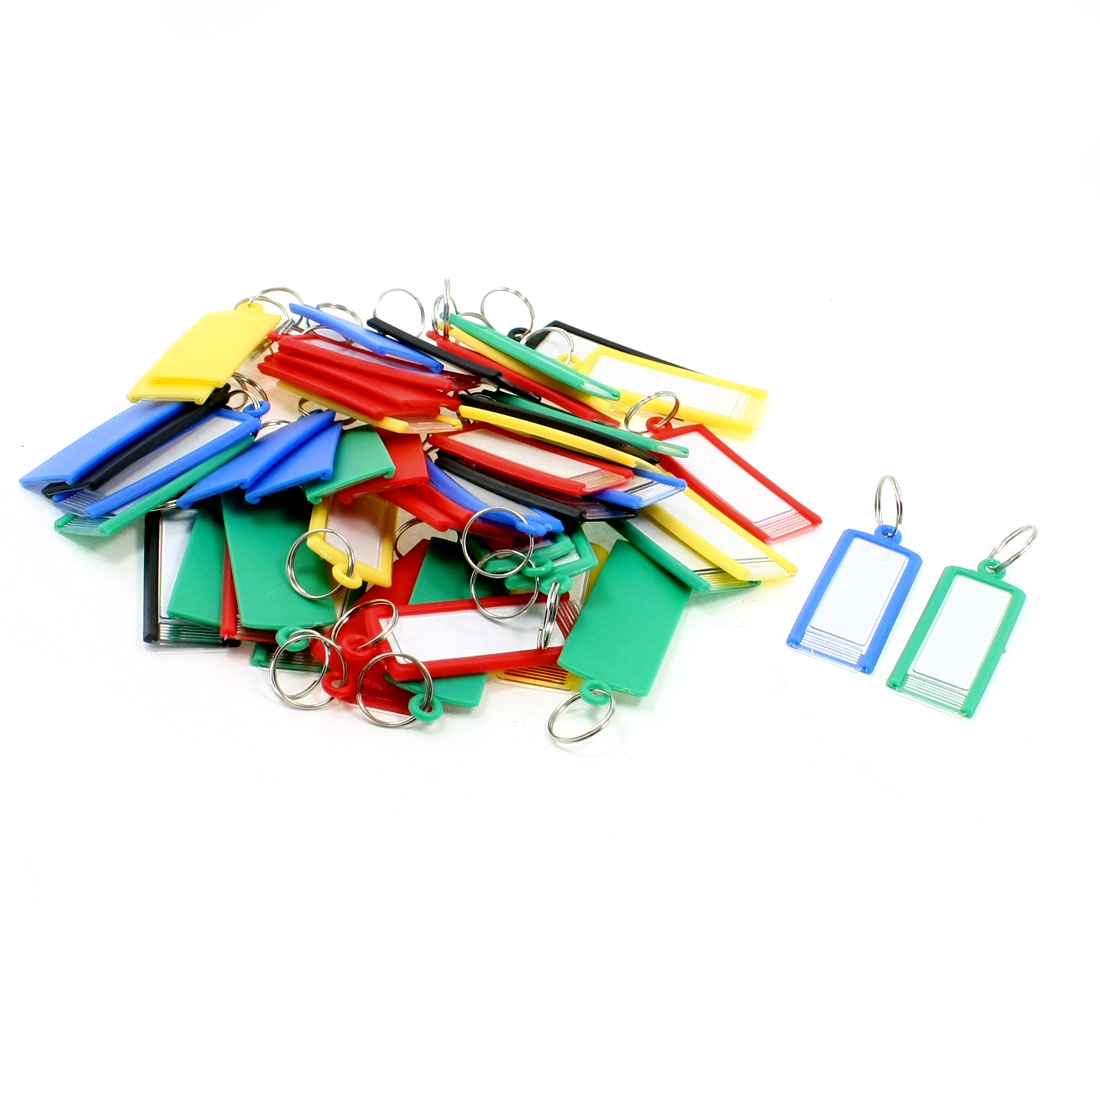 50 Pcs Assorted Colors Plastic Name Tag Metal Clip Holder